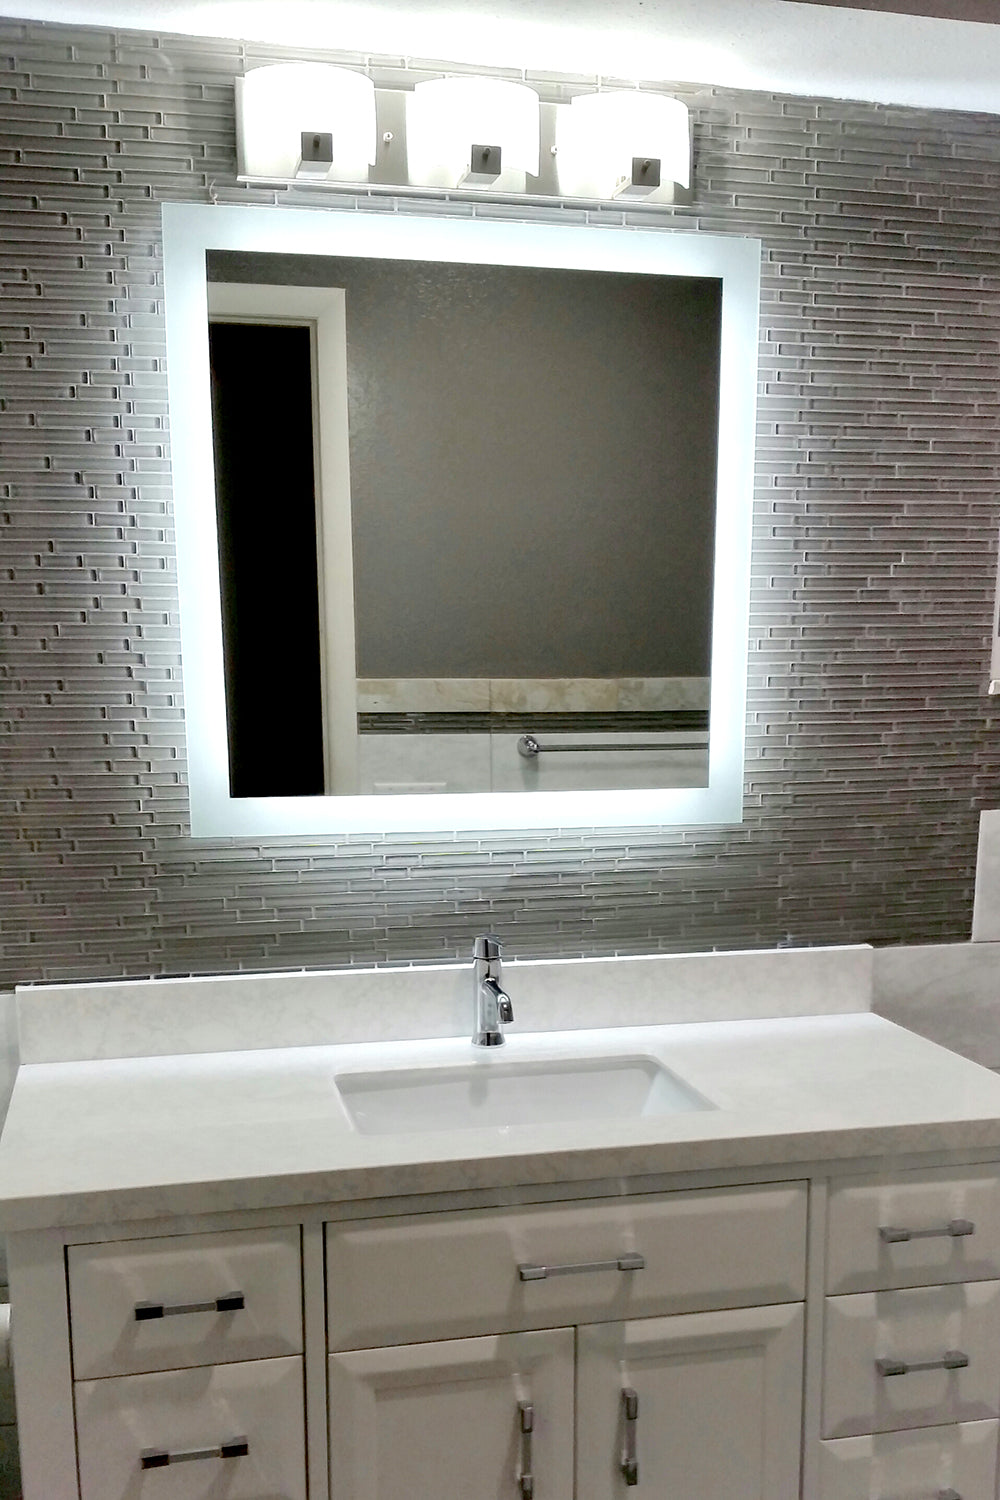 Side Lighted Led Bathroom Vanity Mirror 36 X 36 Square Mirrors Marble